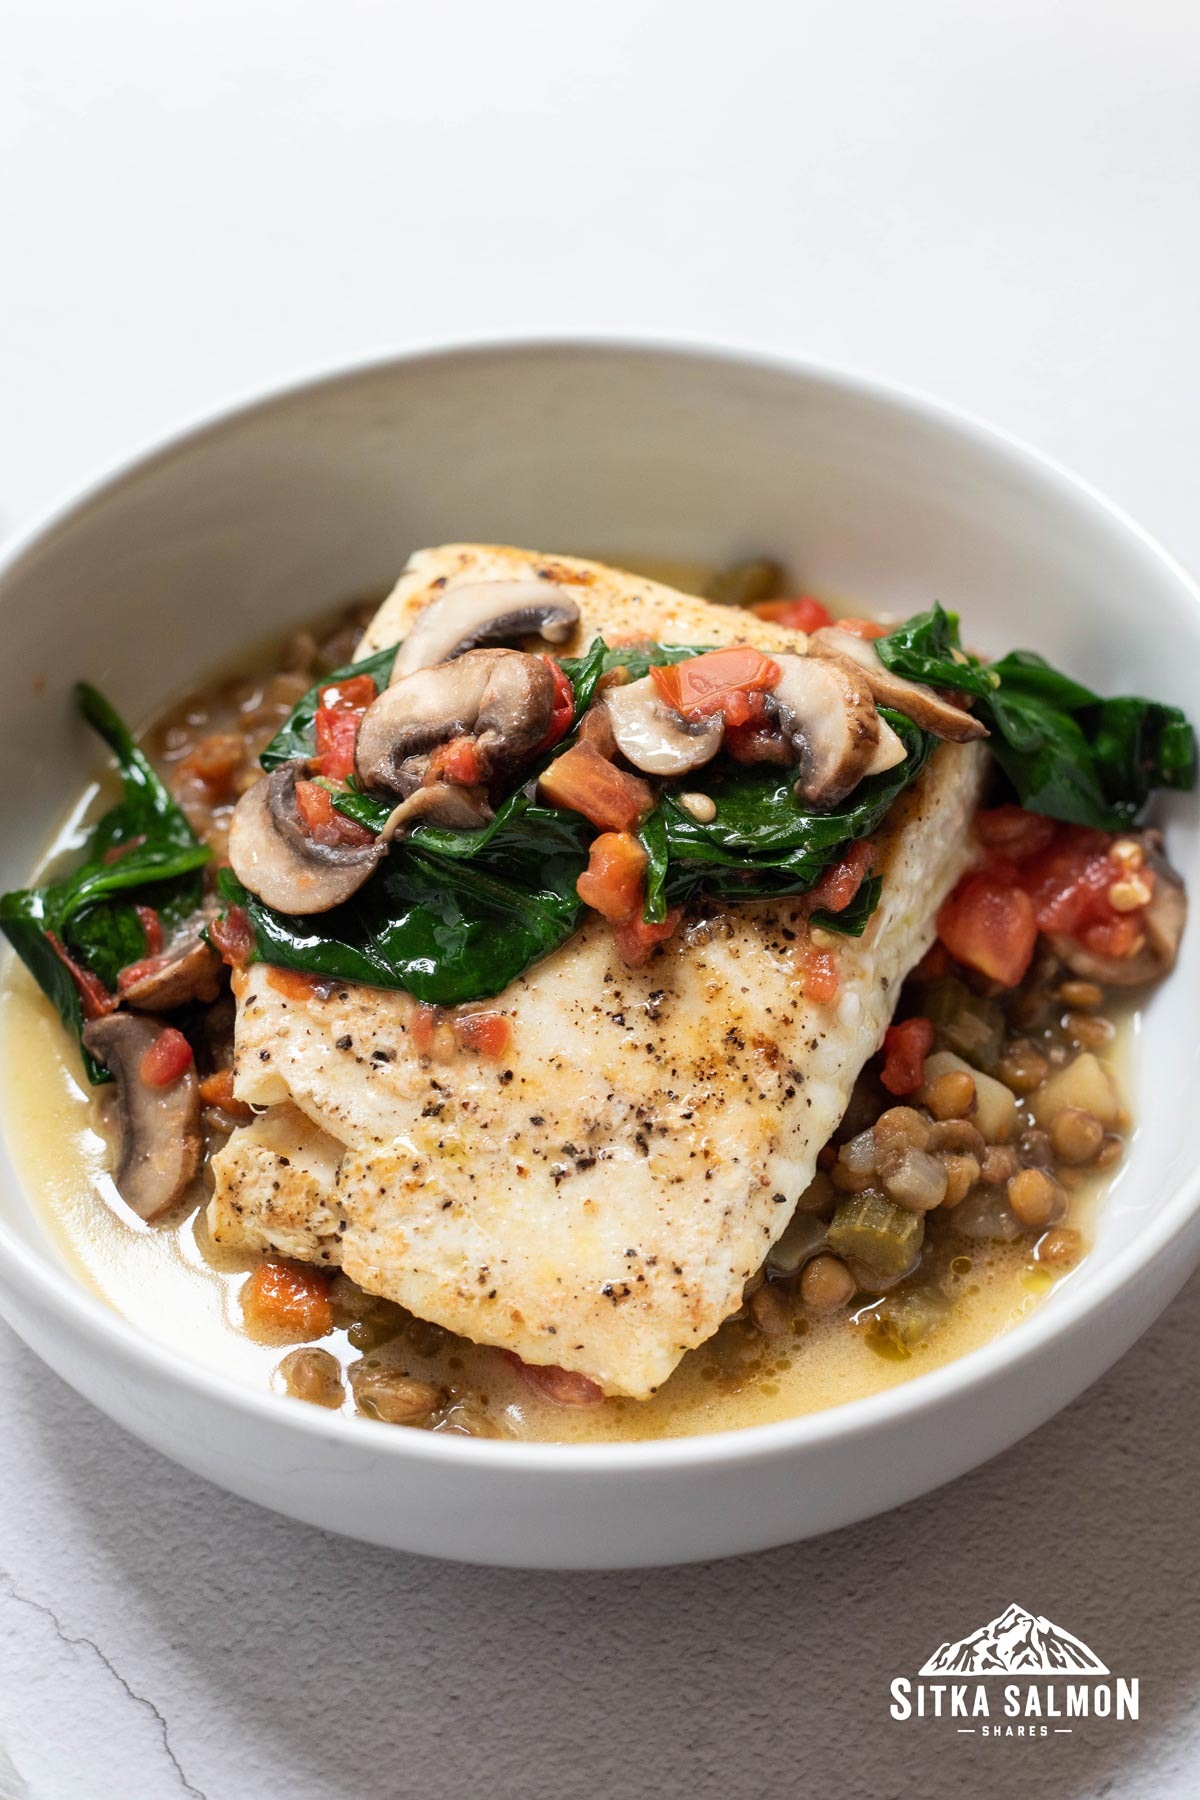 Halibut with Braised Lentils and Lemon Butter Sauce Recipe | Sitka Salmon Shares